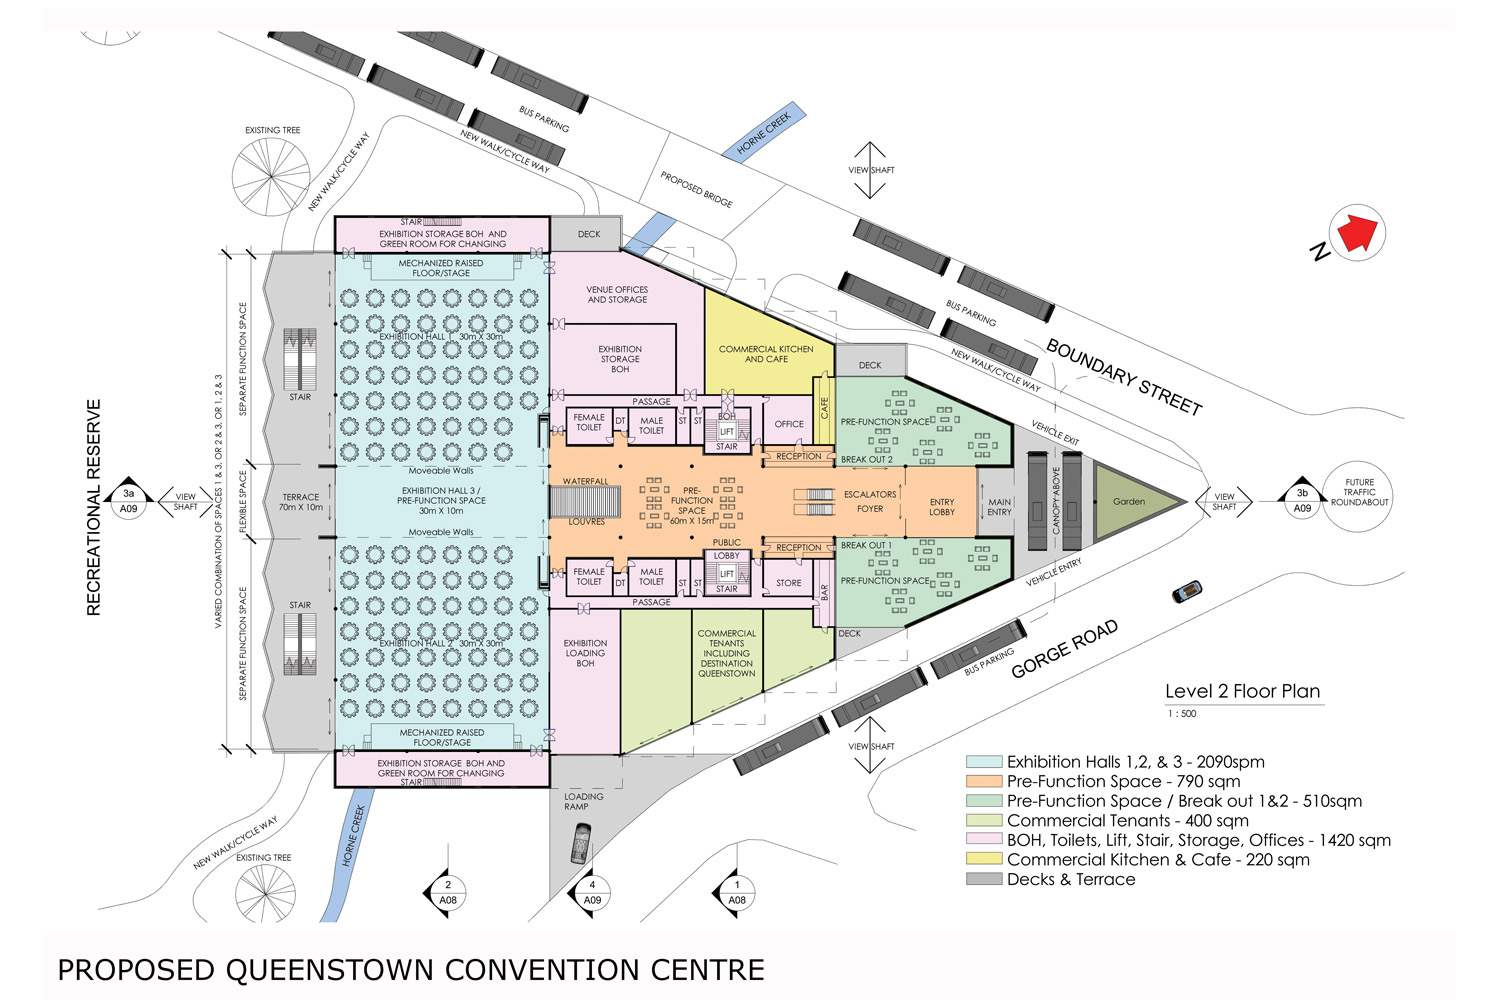 A conceptual site plan of the proposed Queenstown Convention Centre by Gary Todd Architecture.